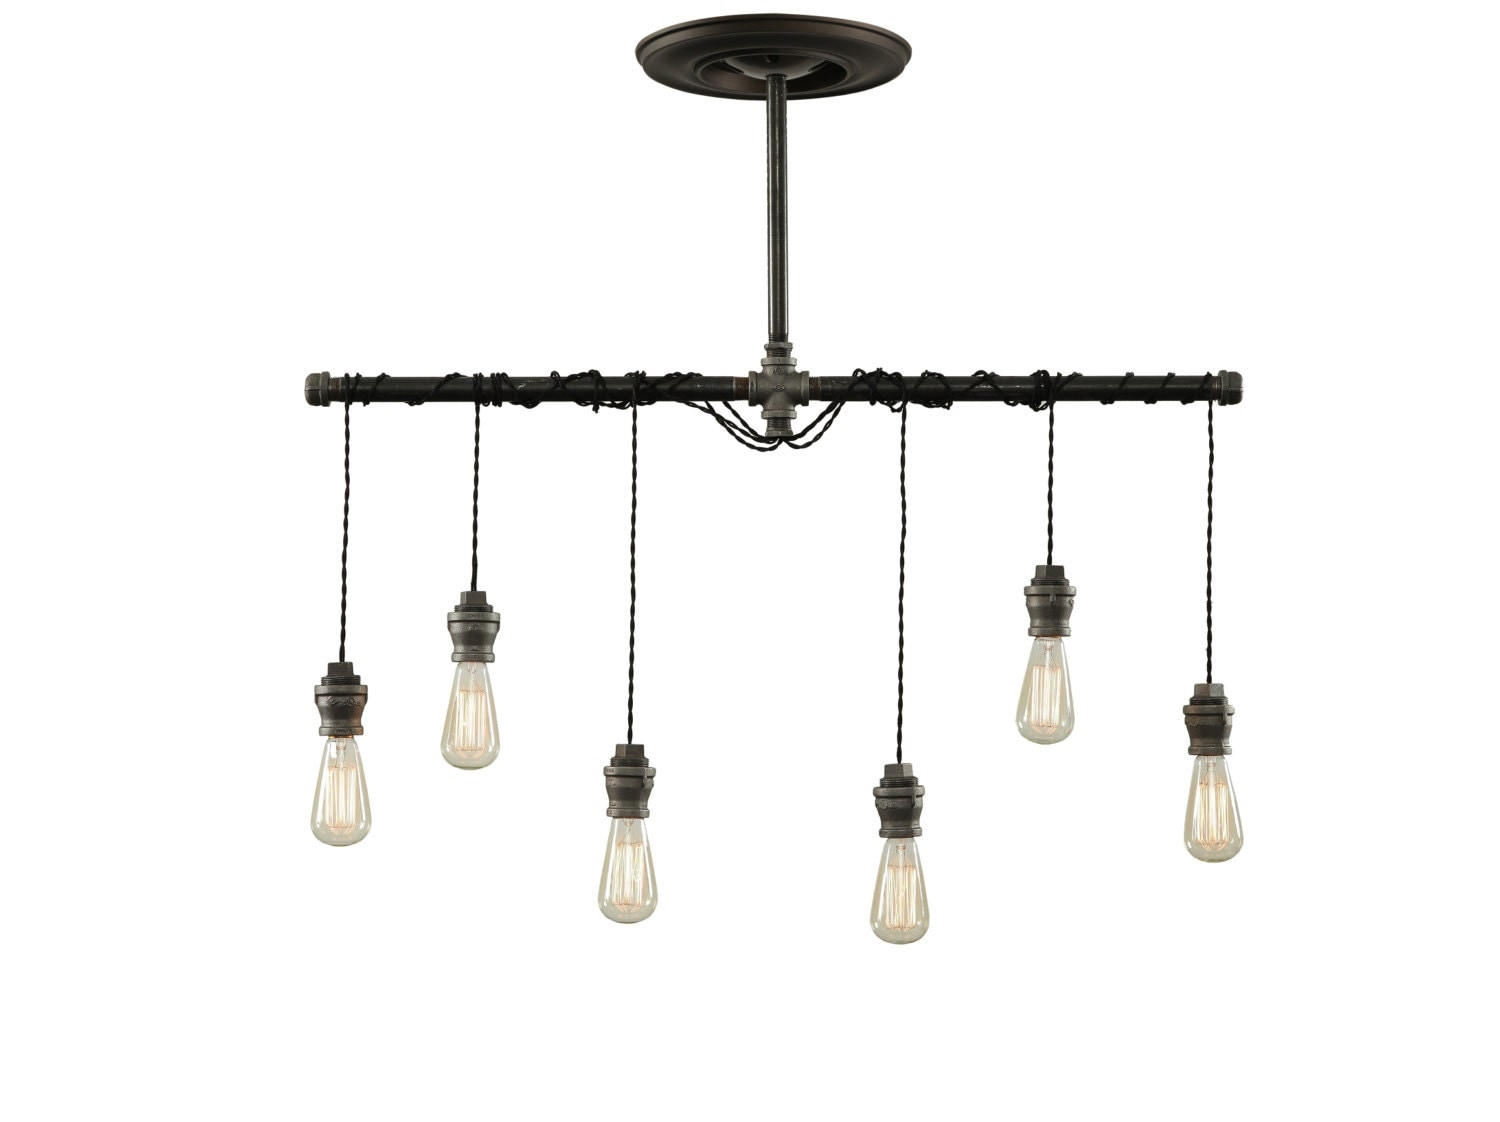 chandelier swag chandelier modern chandelier industrial. Black Bedroom Furniture Sets. Home Design Ideas